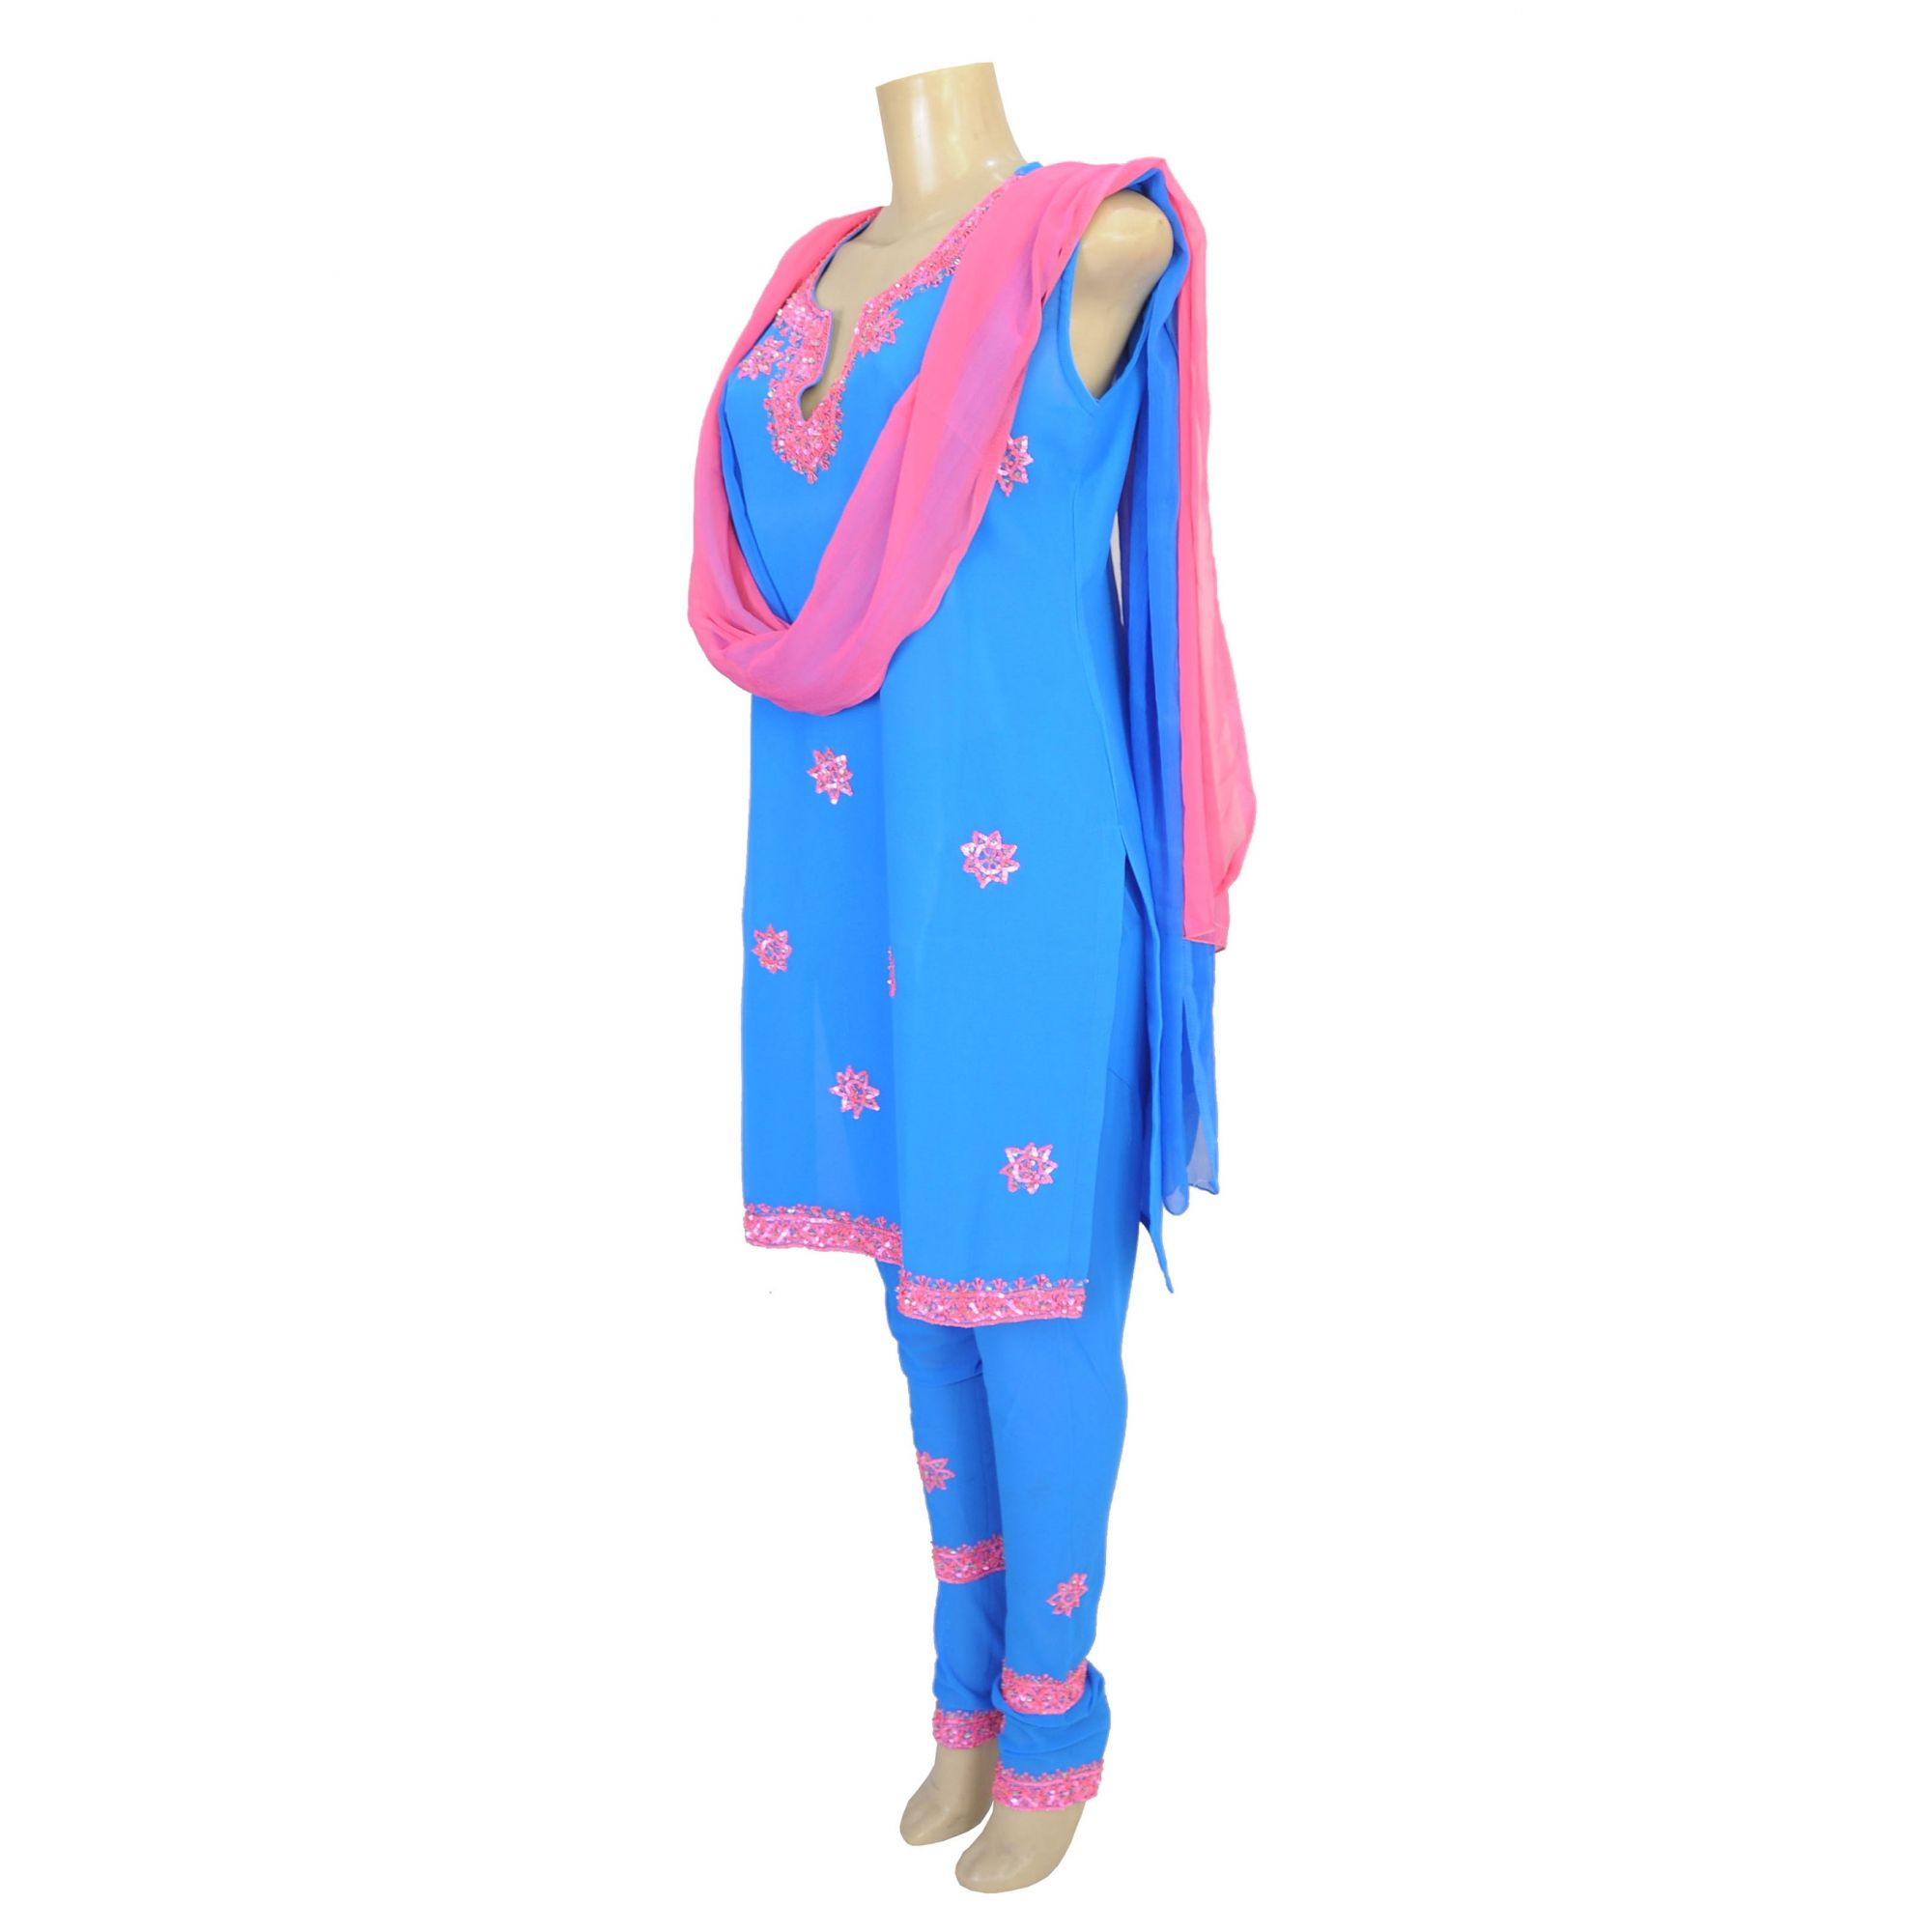 115d4d730 Panjabi Indiano Pink Flower - Hannamoon Panjabi Indiano Pink Flower -  Hannamoon ...